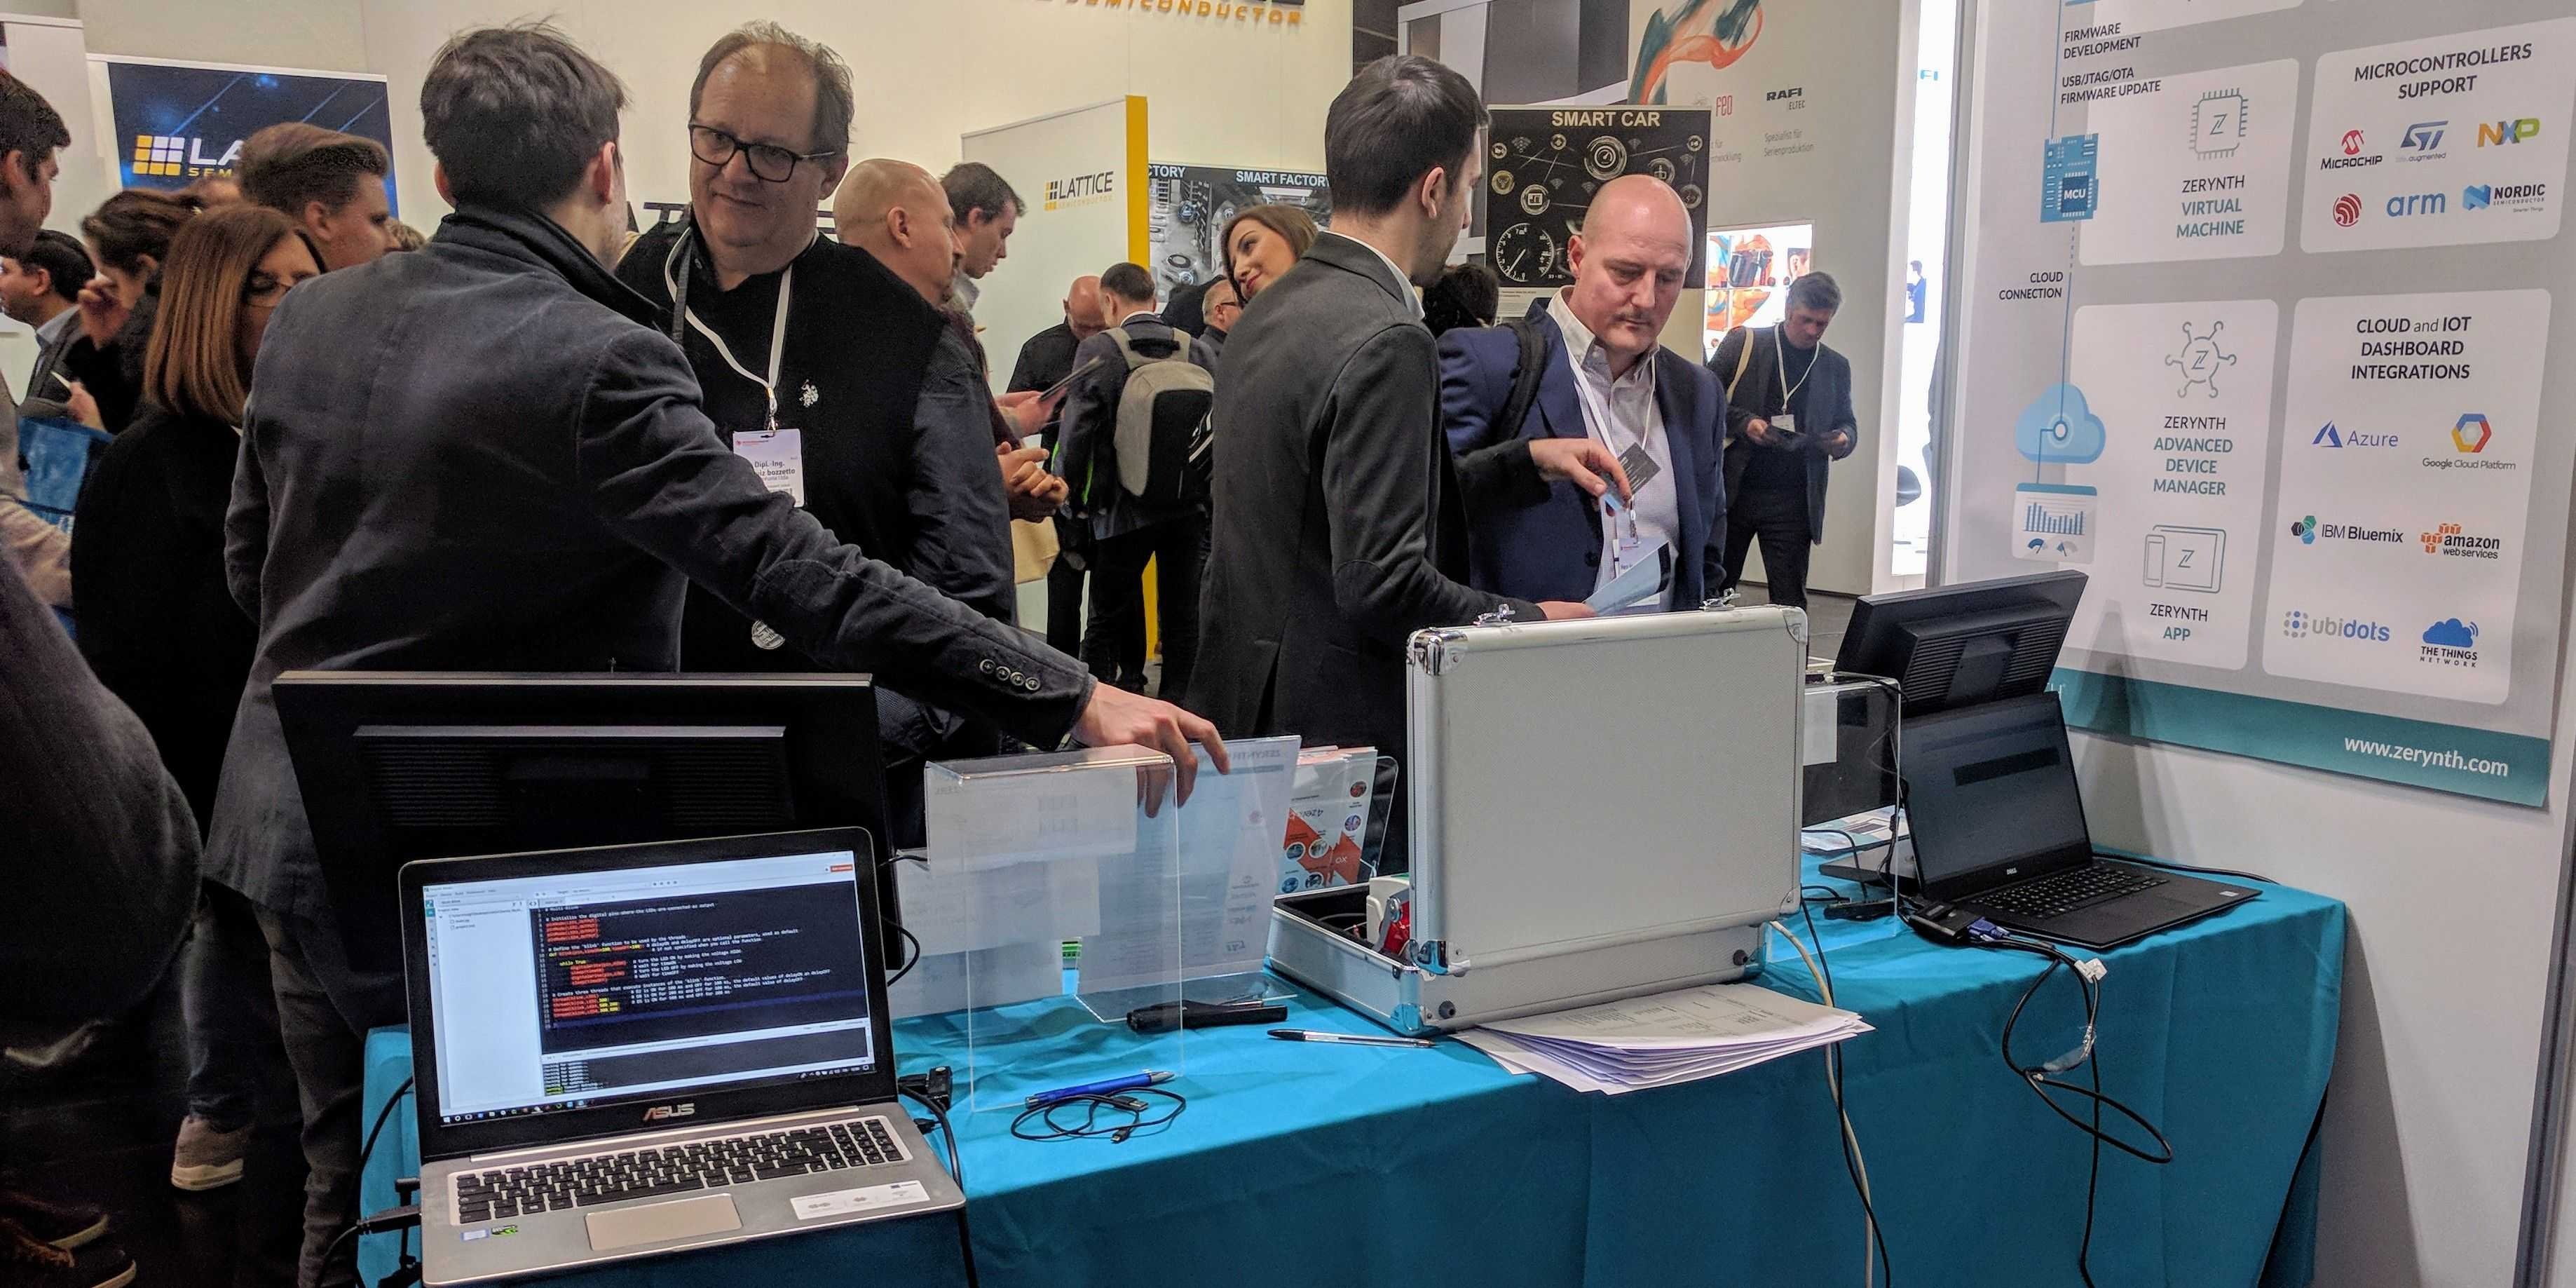 Day 2 at Embedded World with Zerynth – 4zerobox and lots of Python